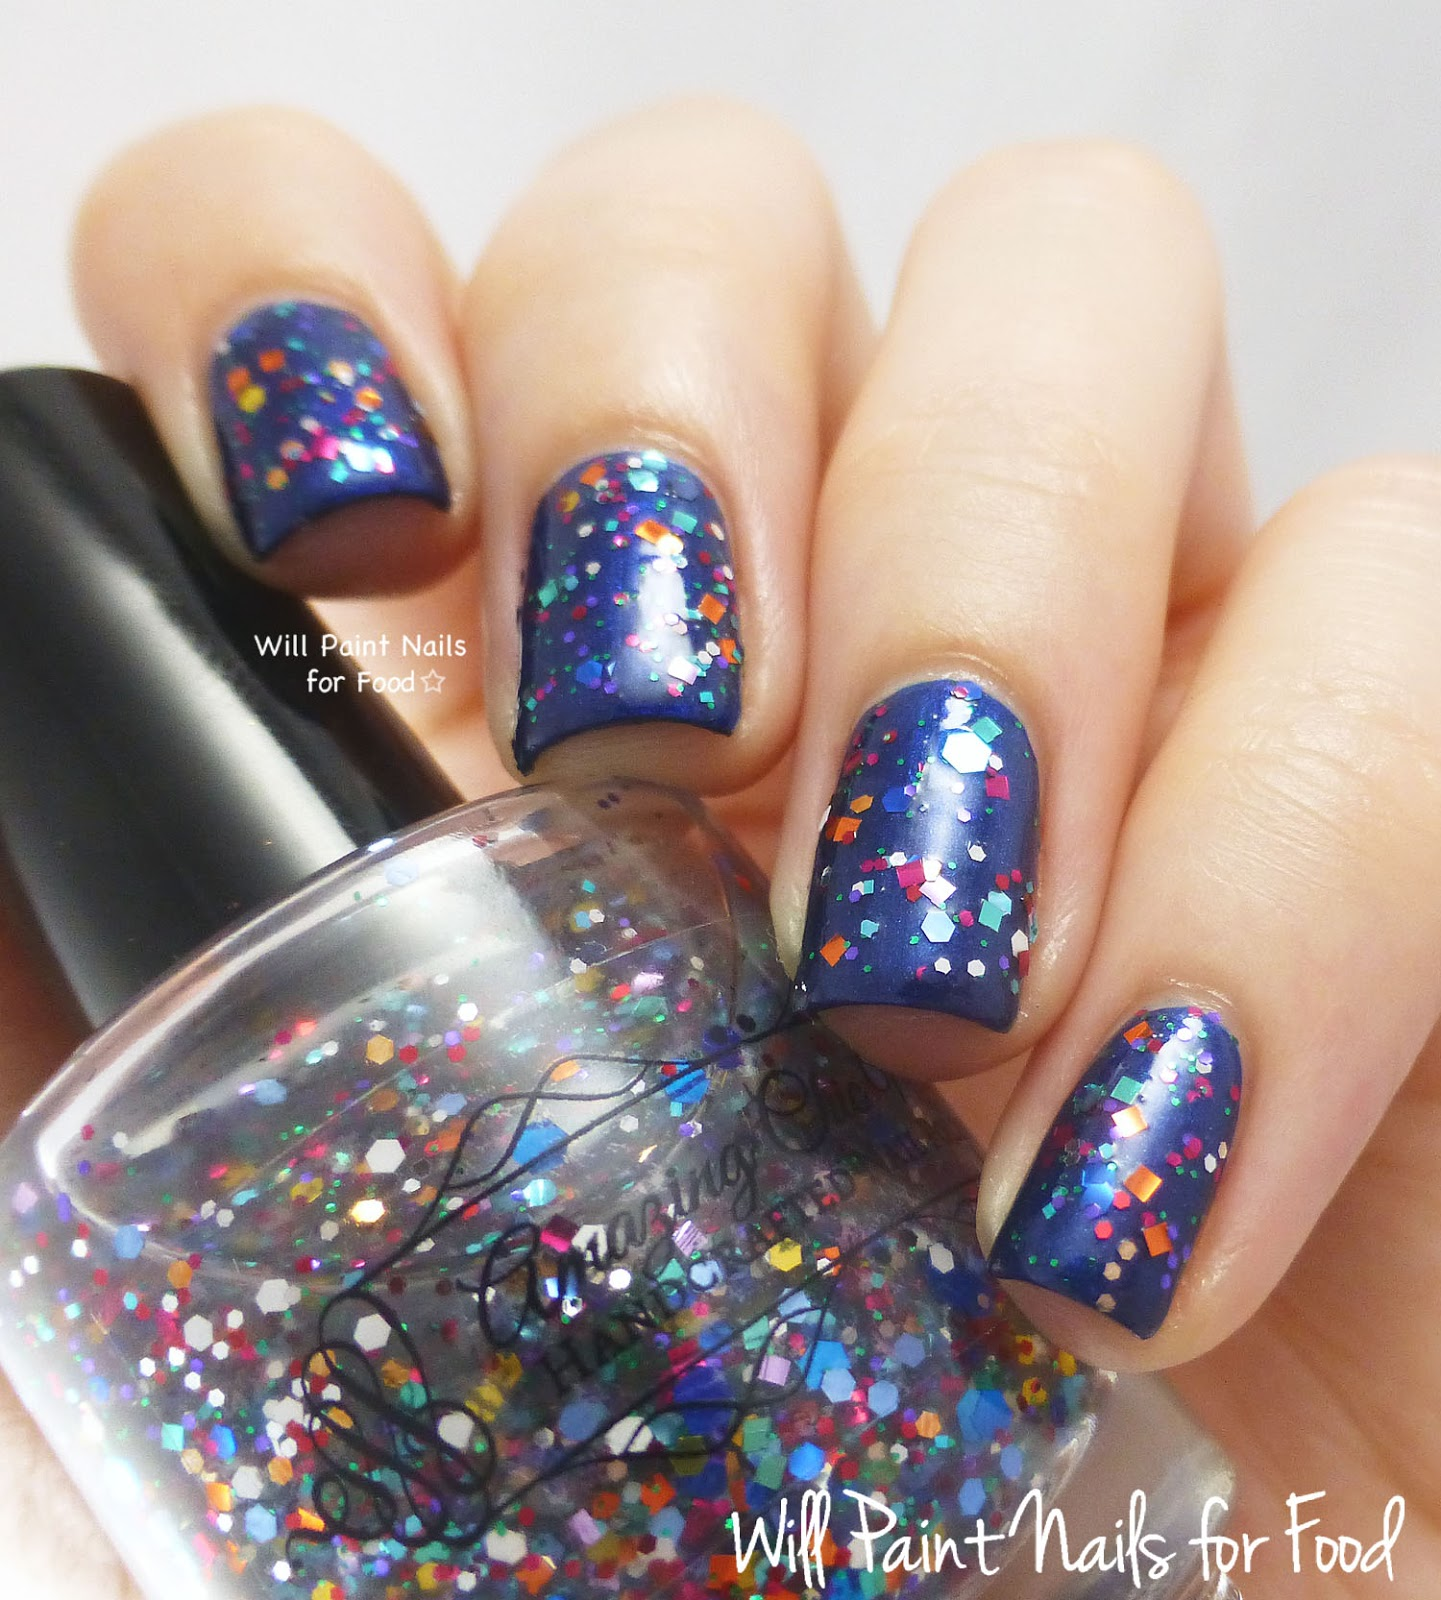 Amazing Chic Nails Omnishambles swatch